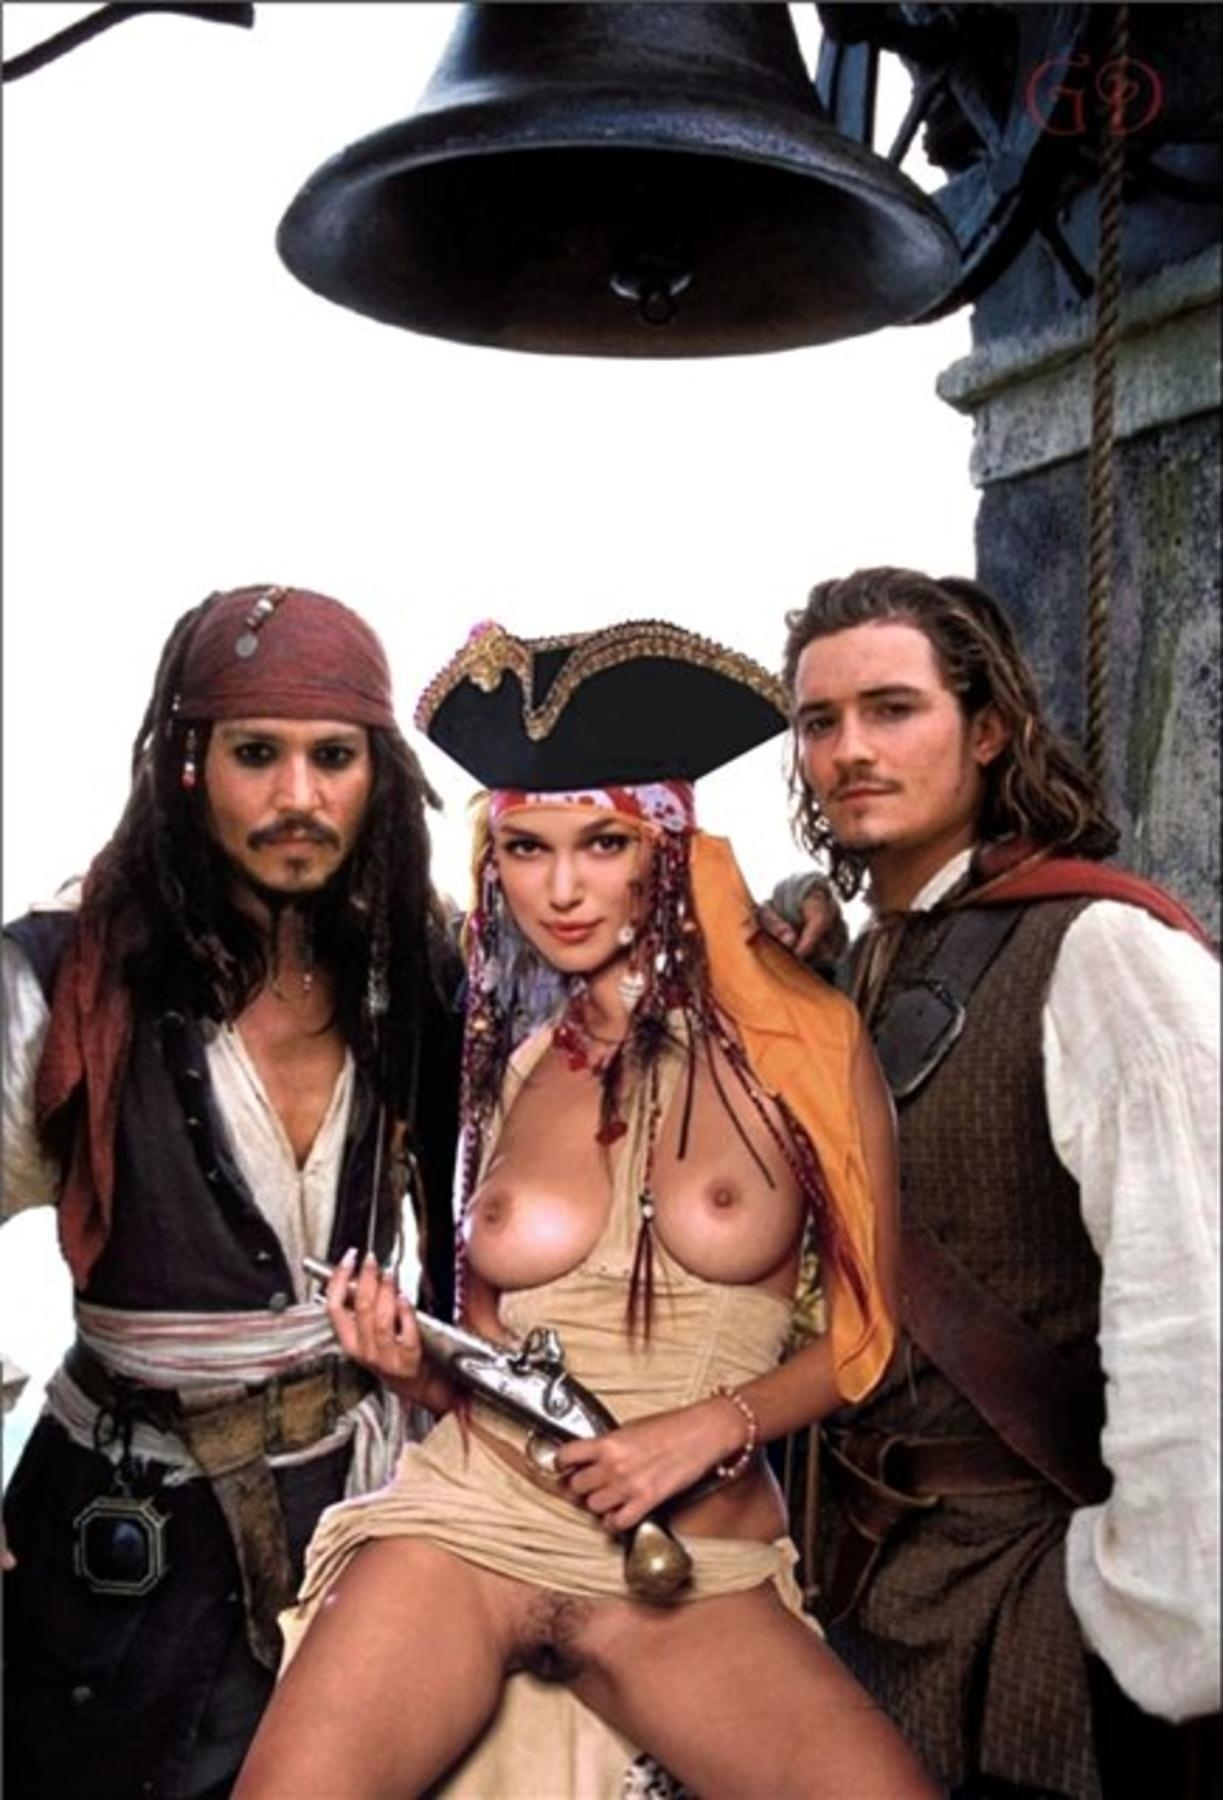 Pirate of the caribbean porno photos xxx picture